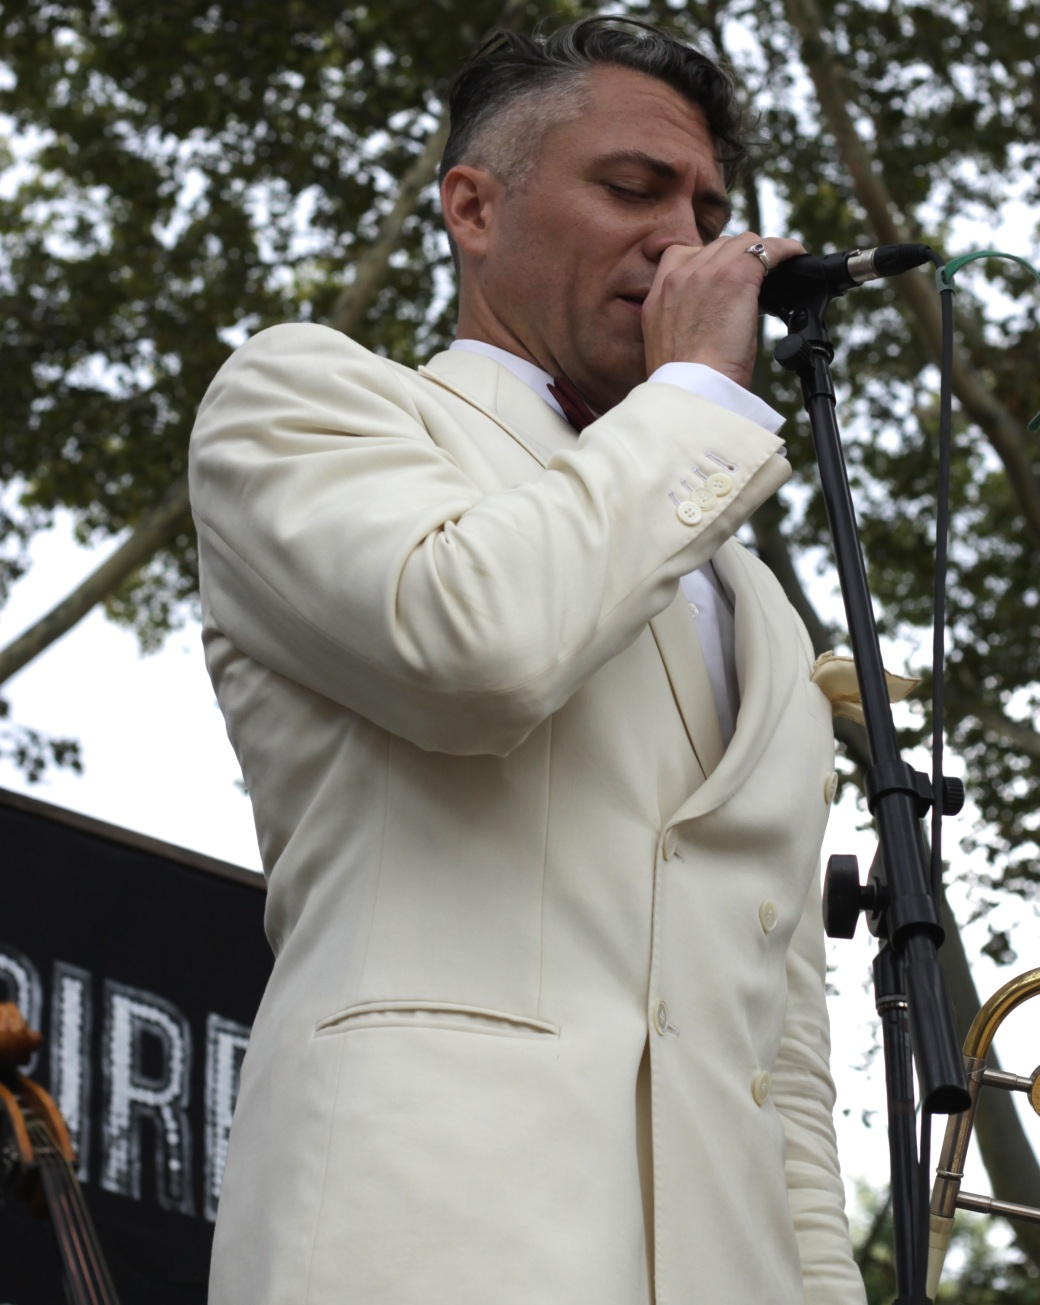 new york city governors island jazz age lawn party august 17 2014 74 michael aranella